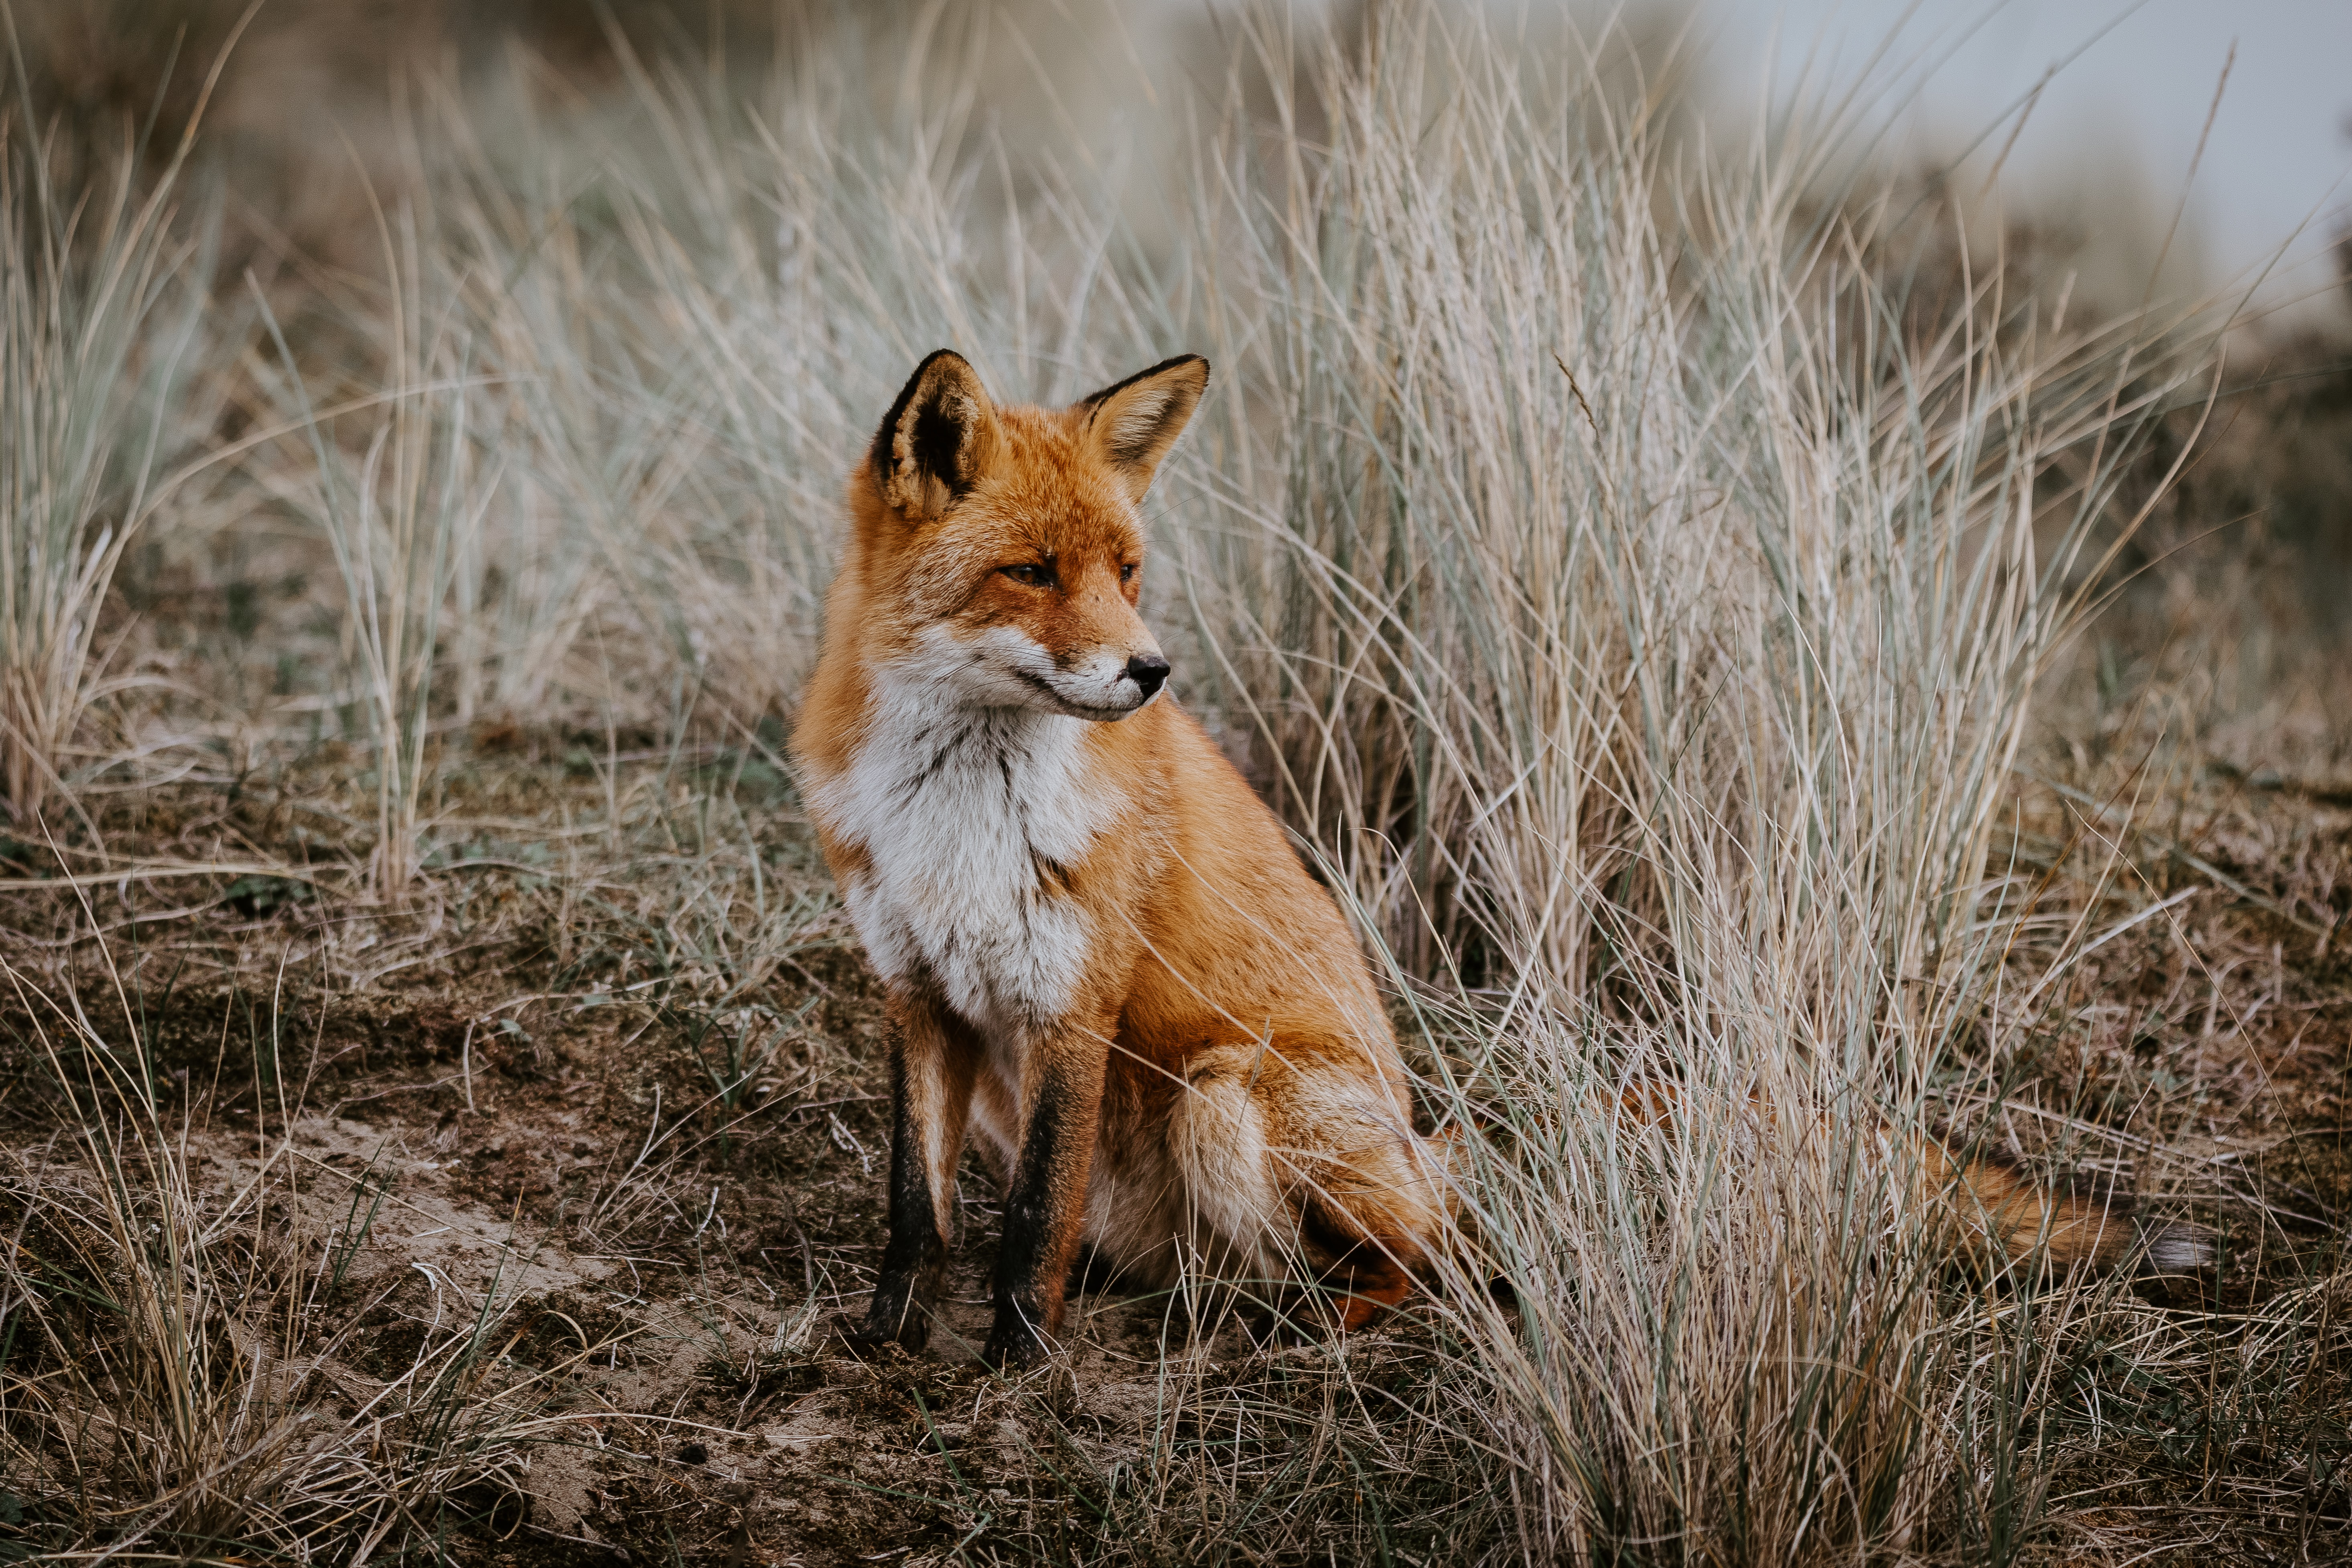 154905 download wallpaper Animals, Fox, Predator, Sight, Opinion, Animal screensavers and pictures for free